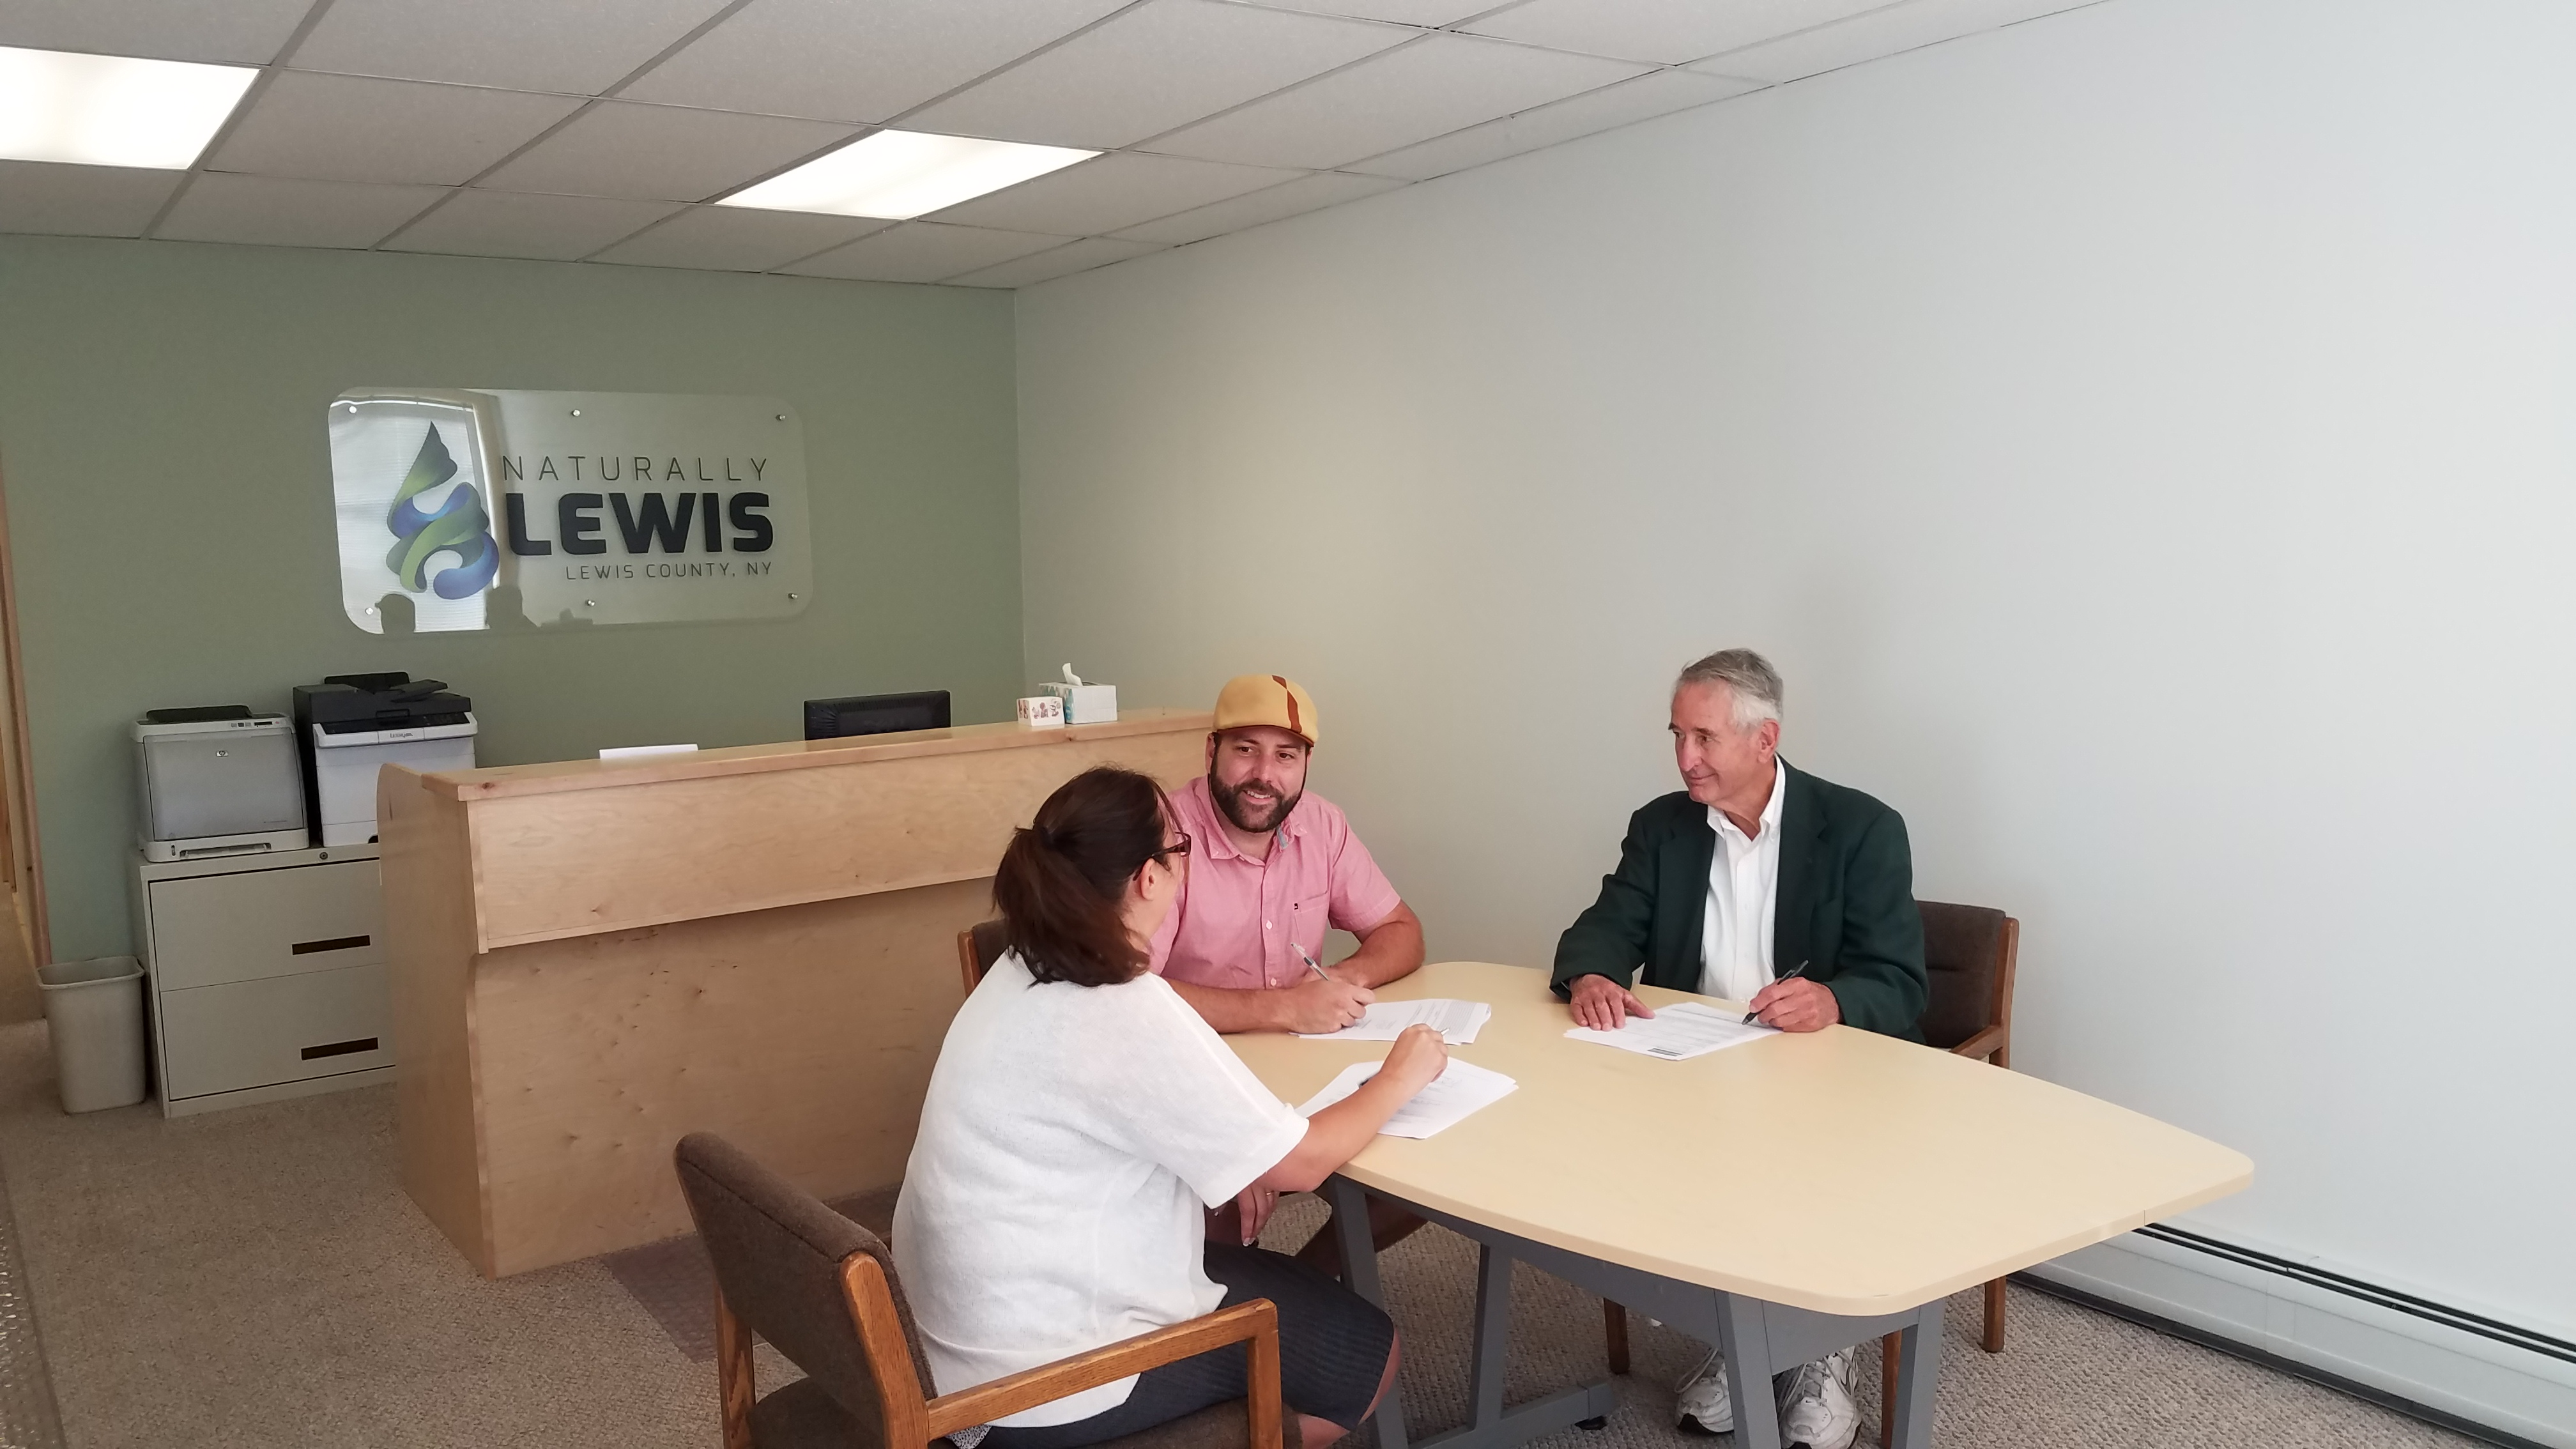 Its Official Naturally Lewis Lewis County Industrial - Lewis training table